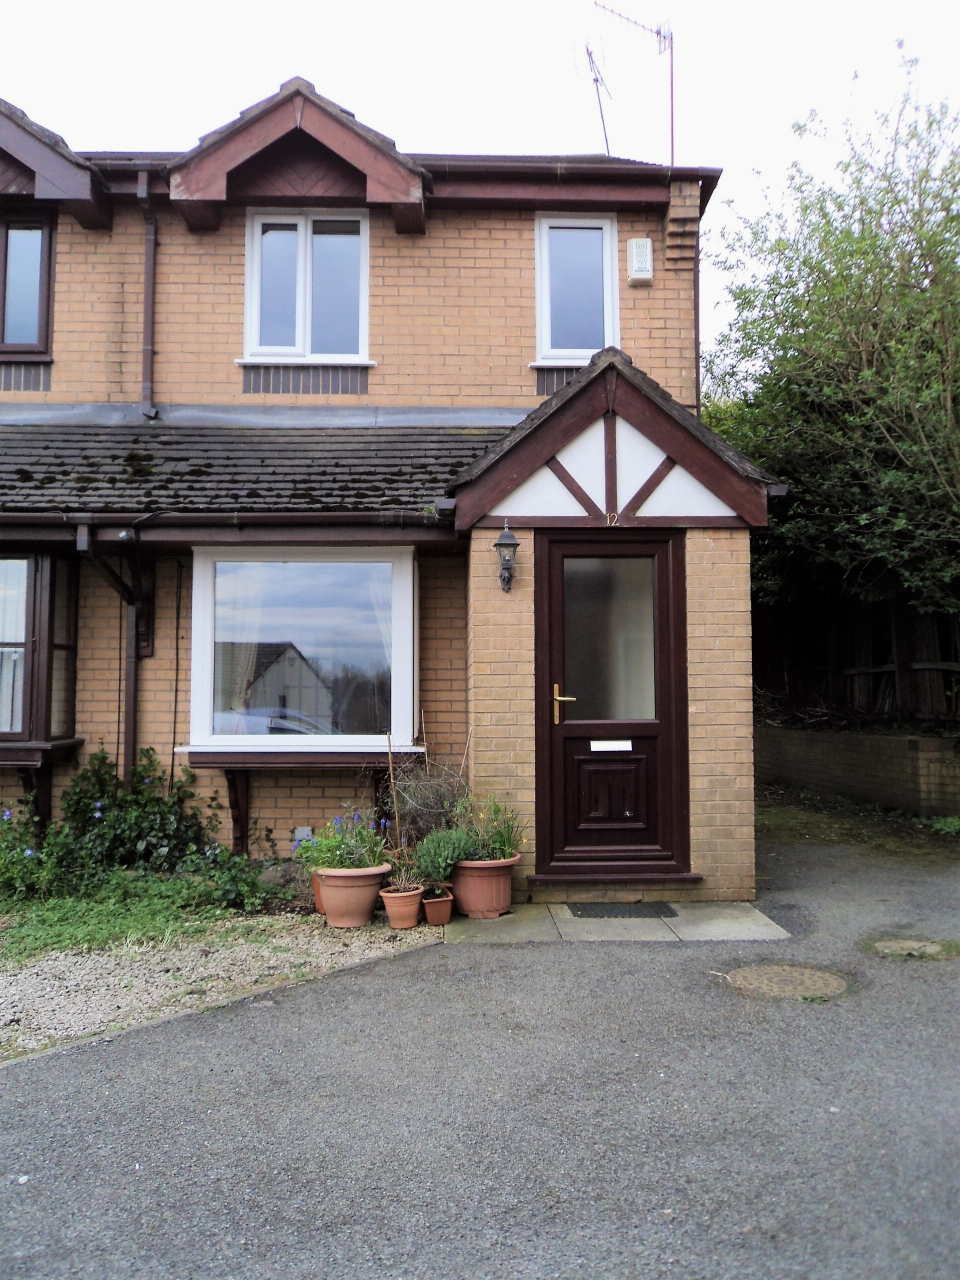 2 Bedroom Semi-detached House To Rent - Photograph 2